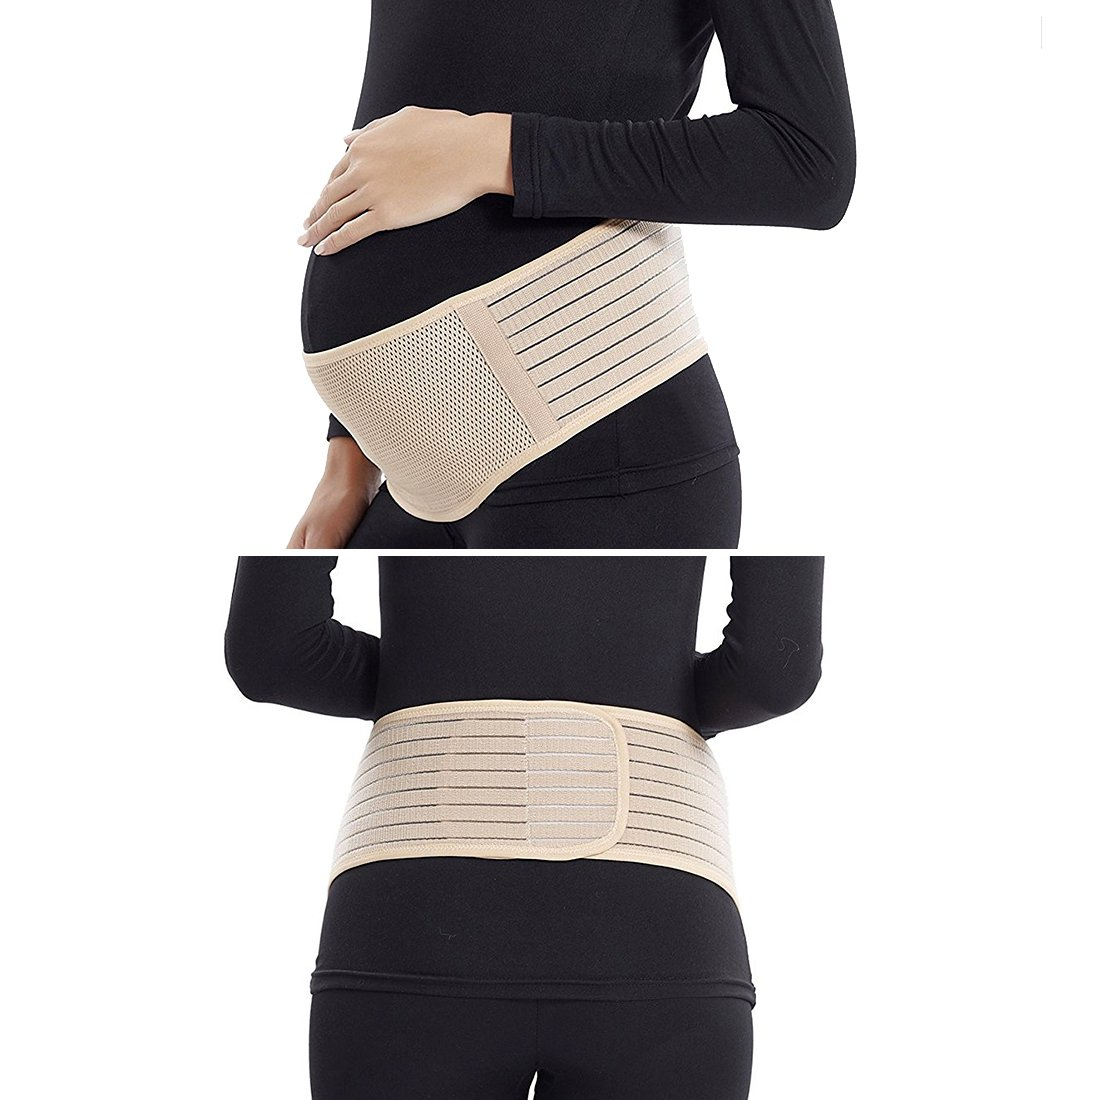 Maternity Belt,Belly Band for Pregnancy,Back and Pelvic Support,Top 10 Gifts for Women/Mom,Prenatal Cradle for Baby-Nude